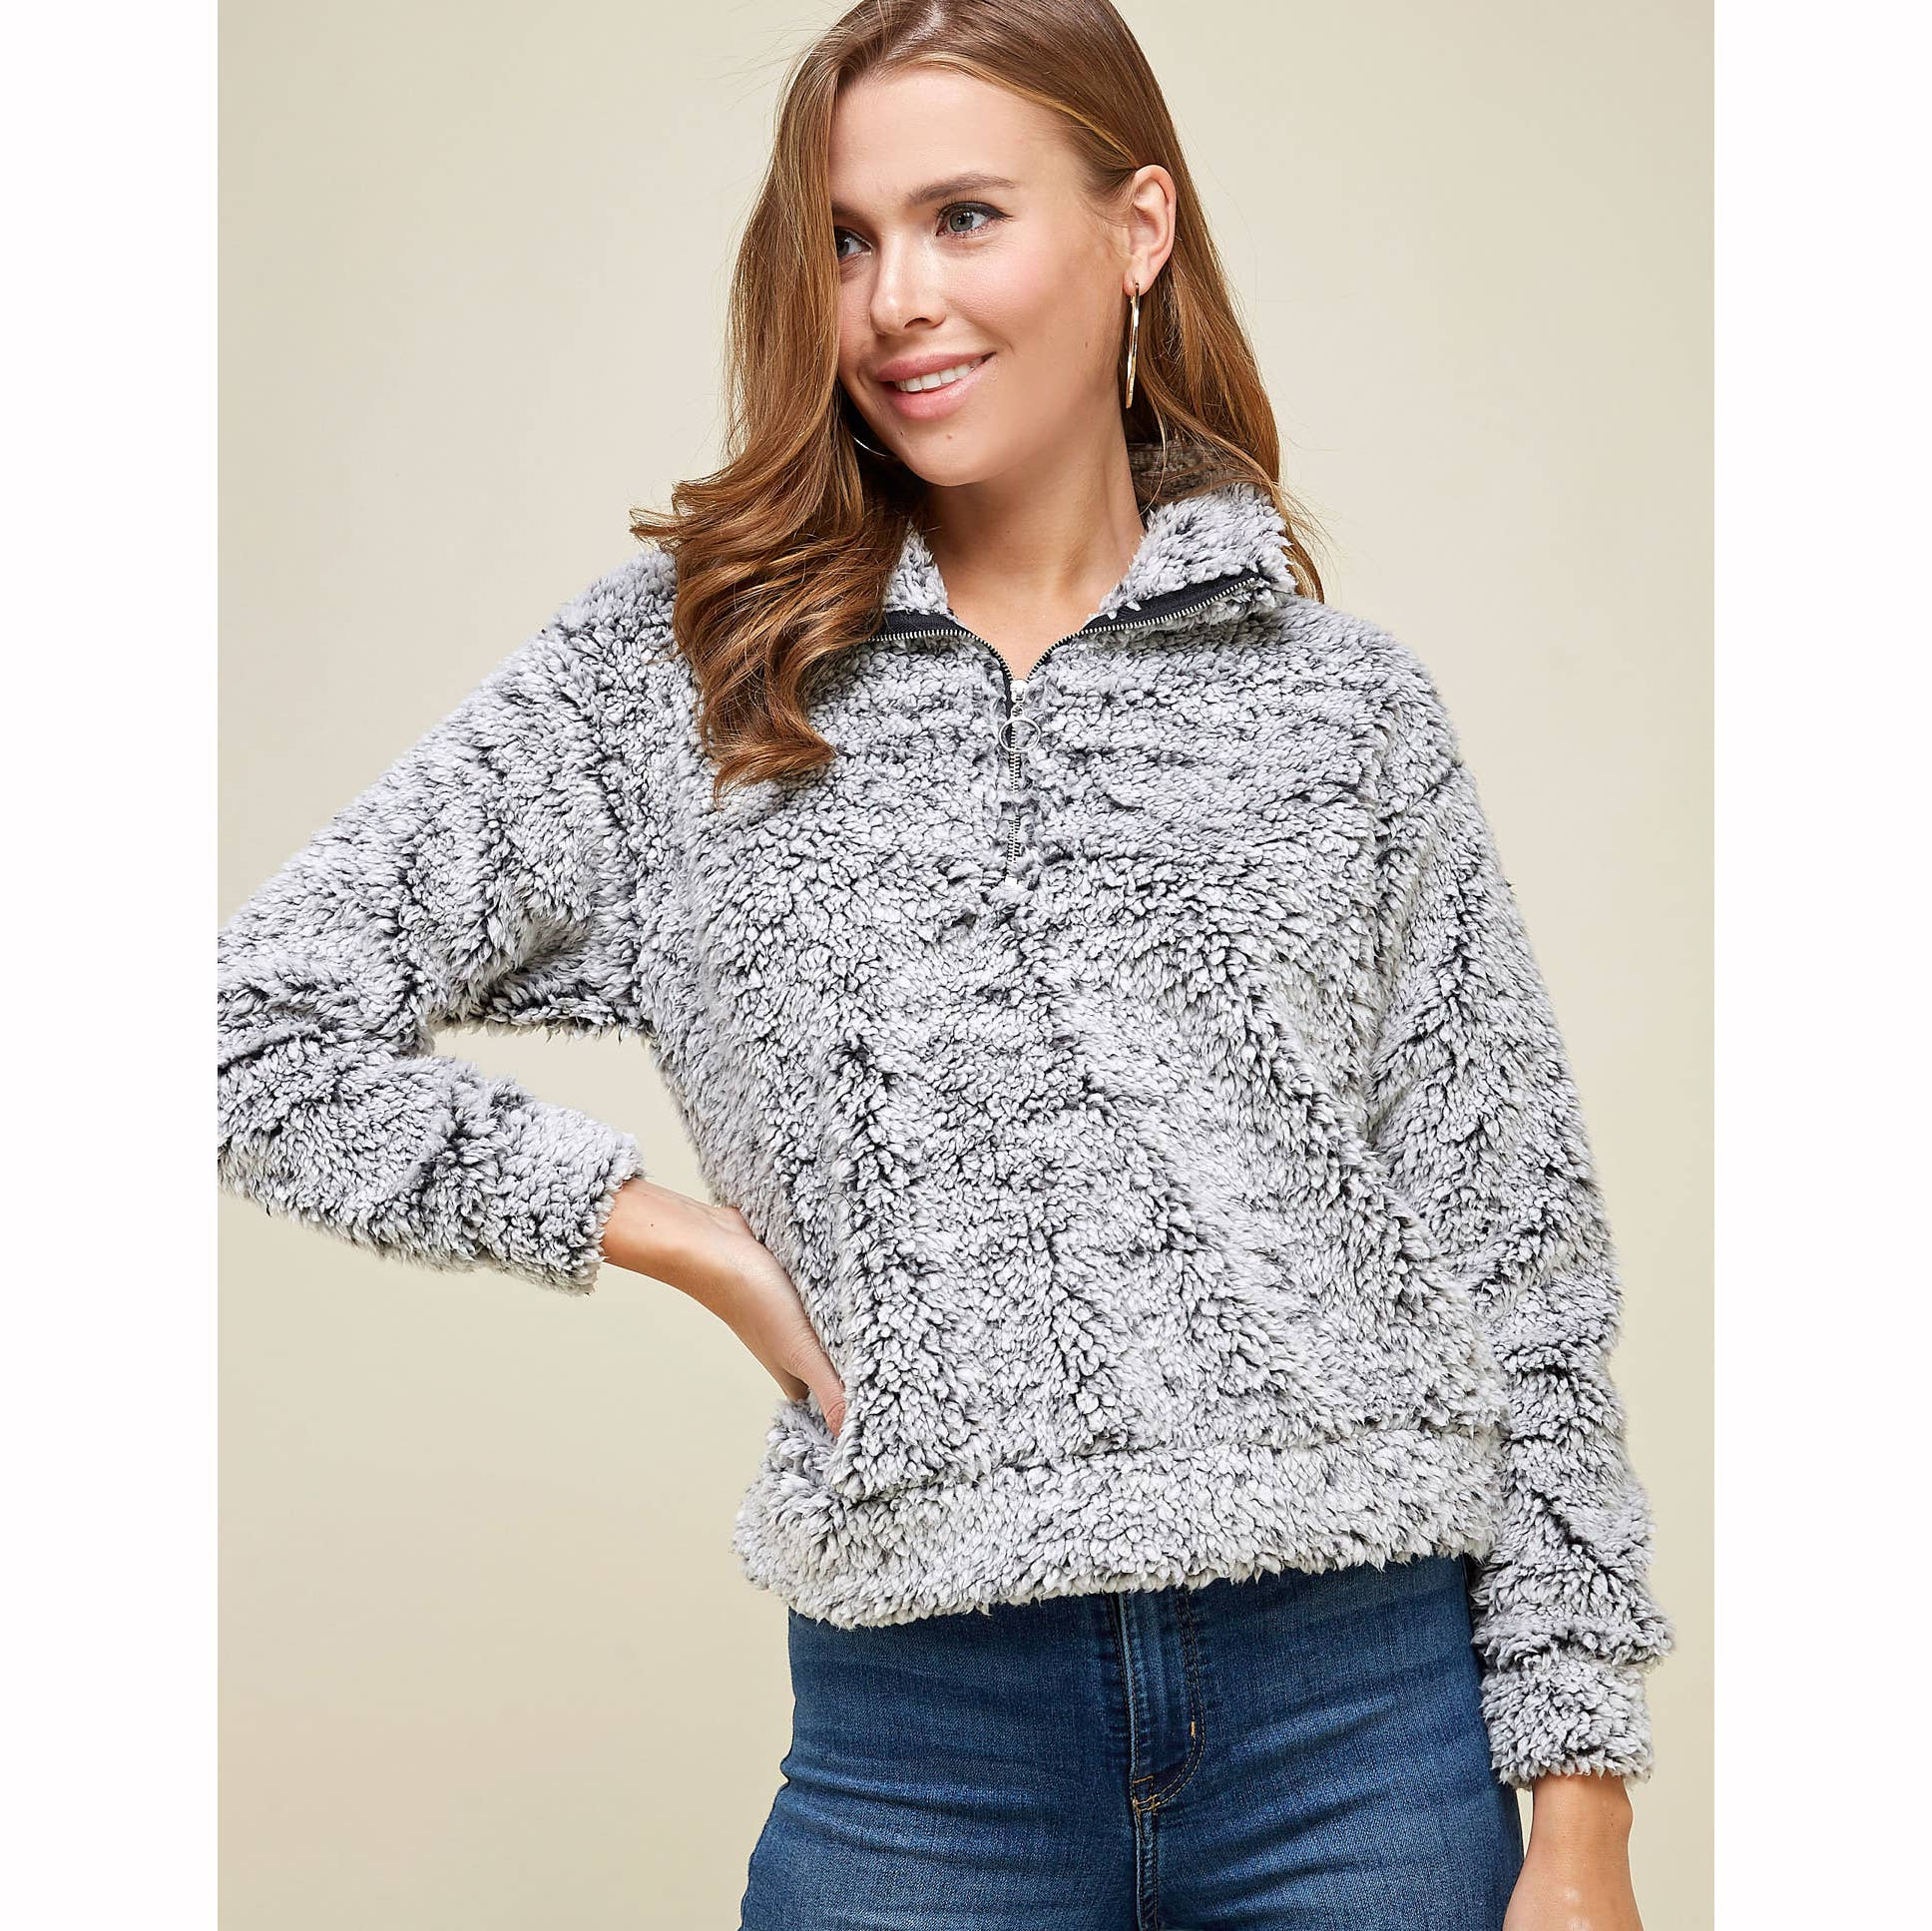 COZY GREY/BLACK LONG SLEEVE TEDDY BEAR ZIP PULLOVER